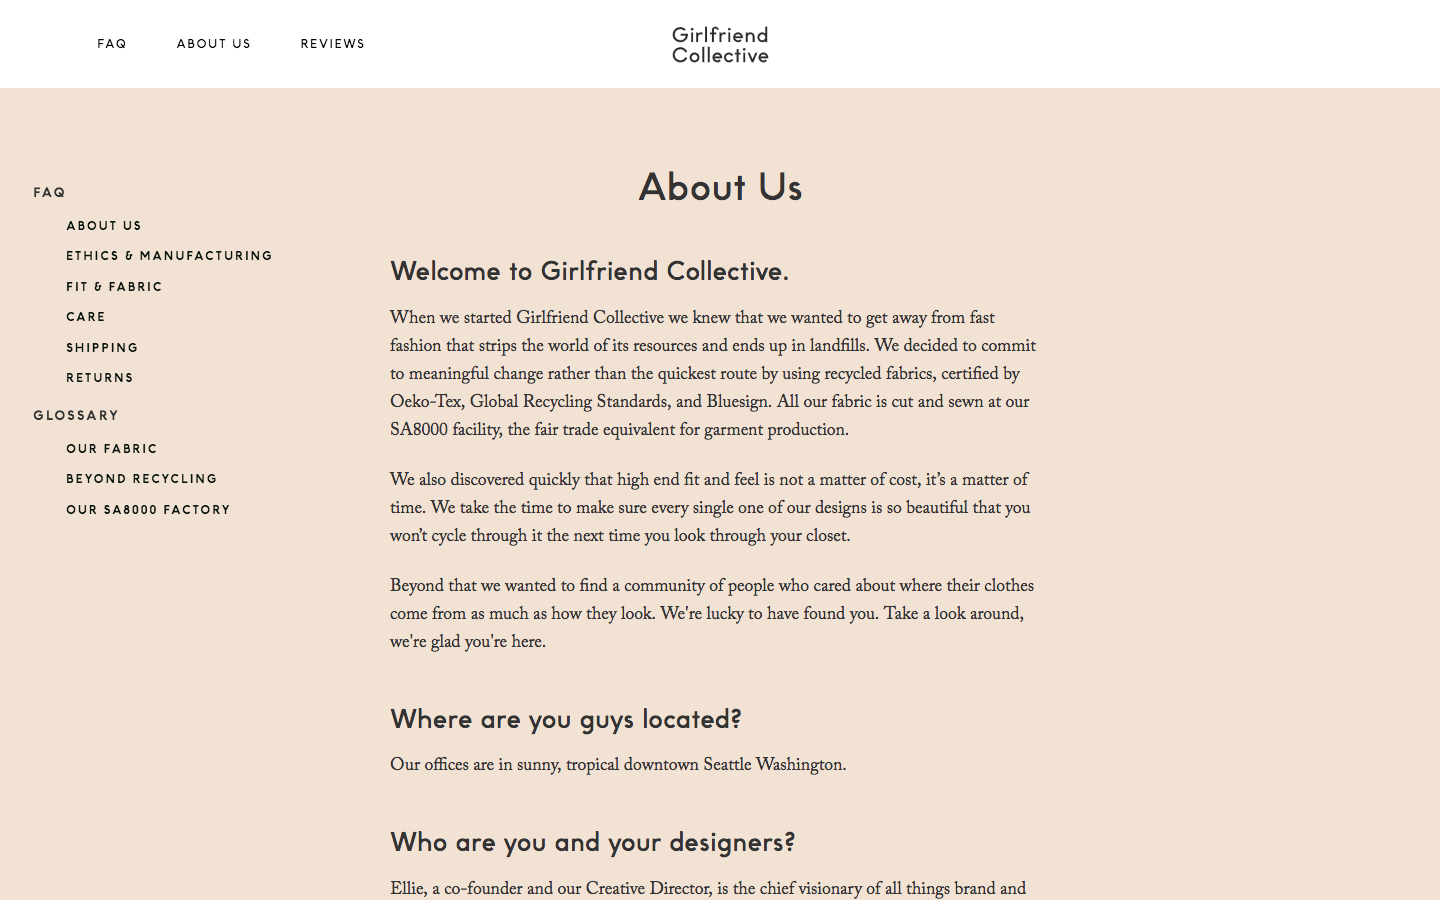 Girlfriend Collective about us page and frequently asked questions